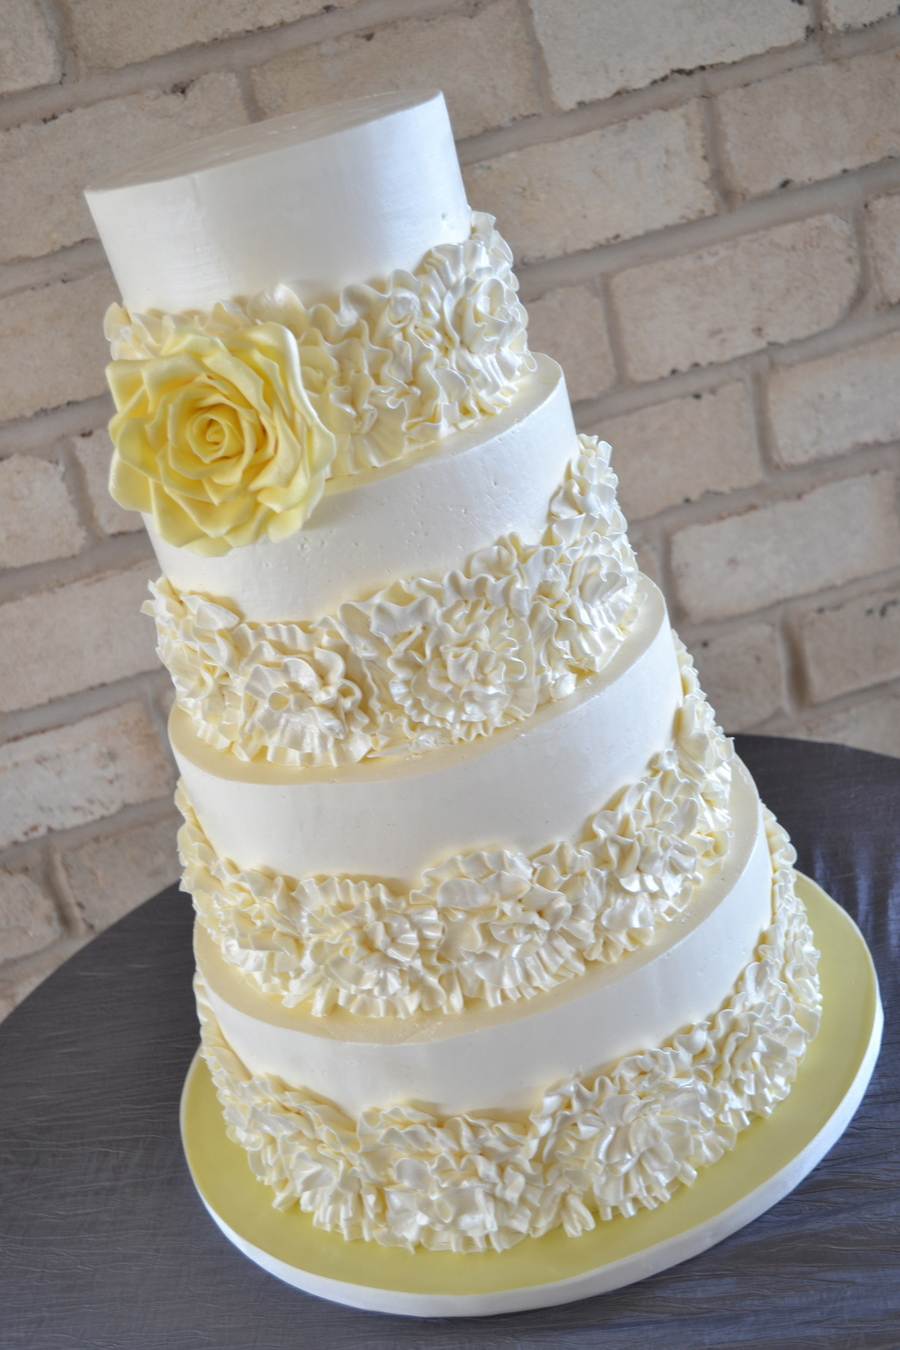 Buttercream Ruffles Wedding Cake  on Cake Central